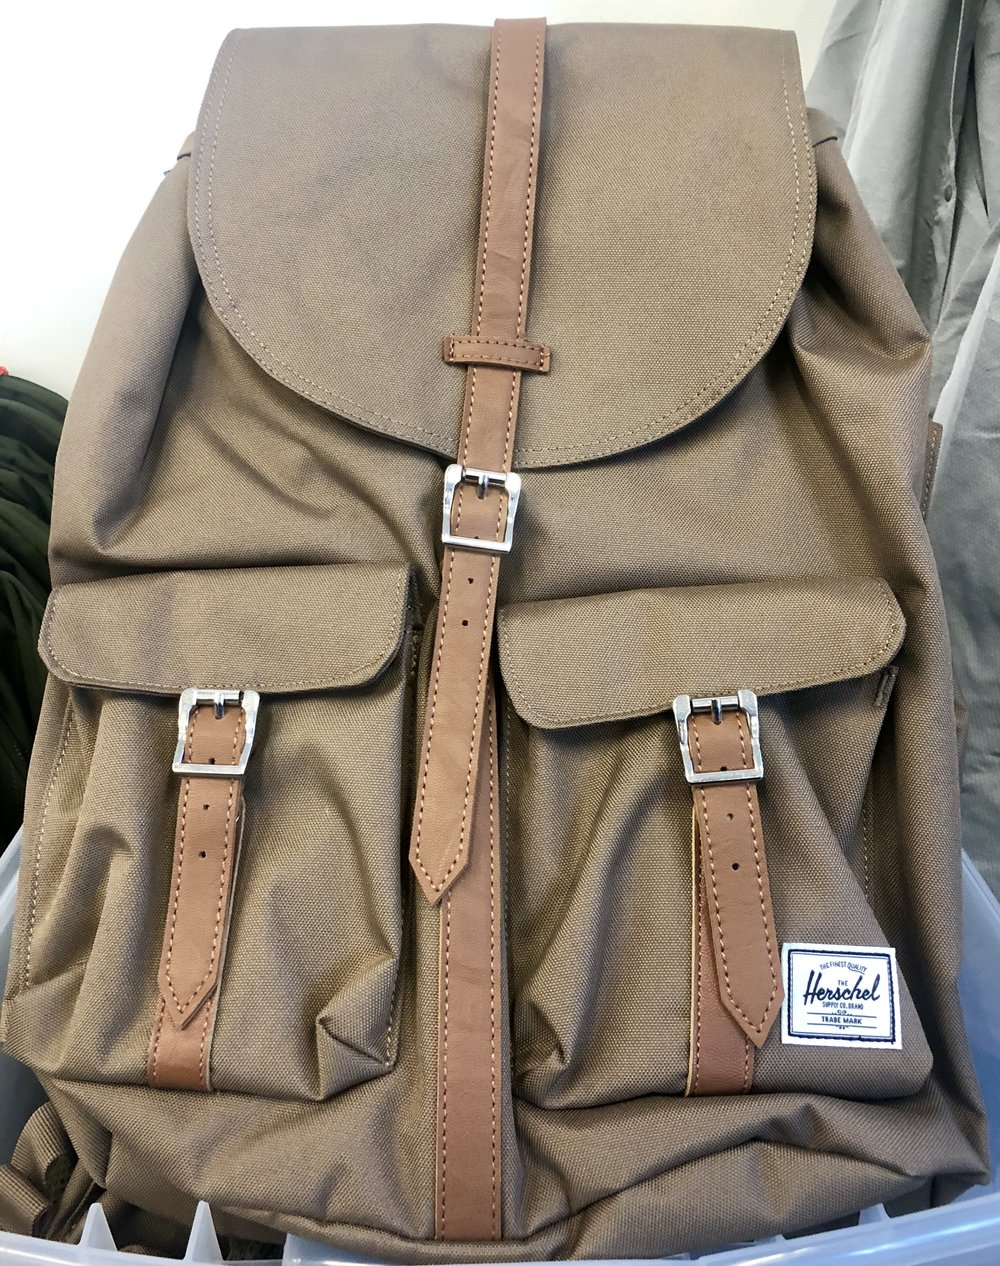 Backpack 4.jpg